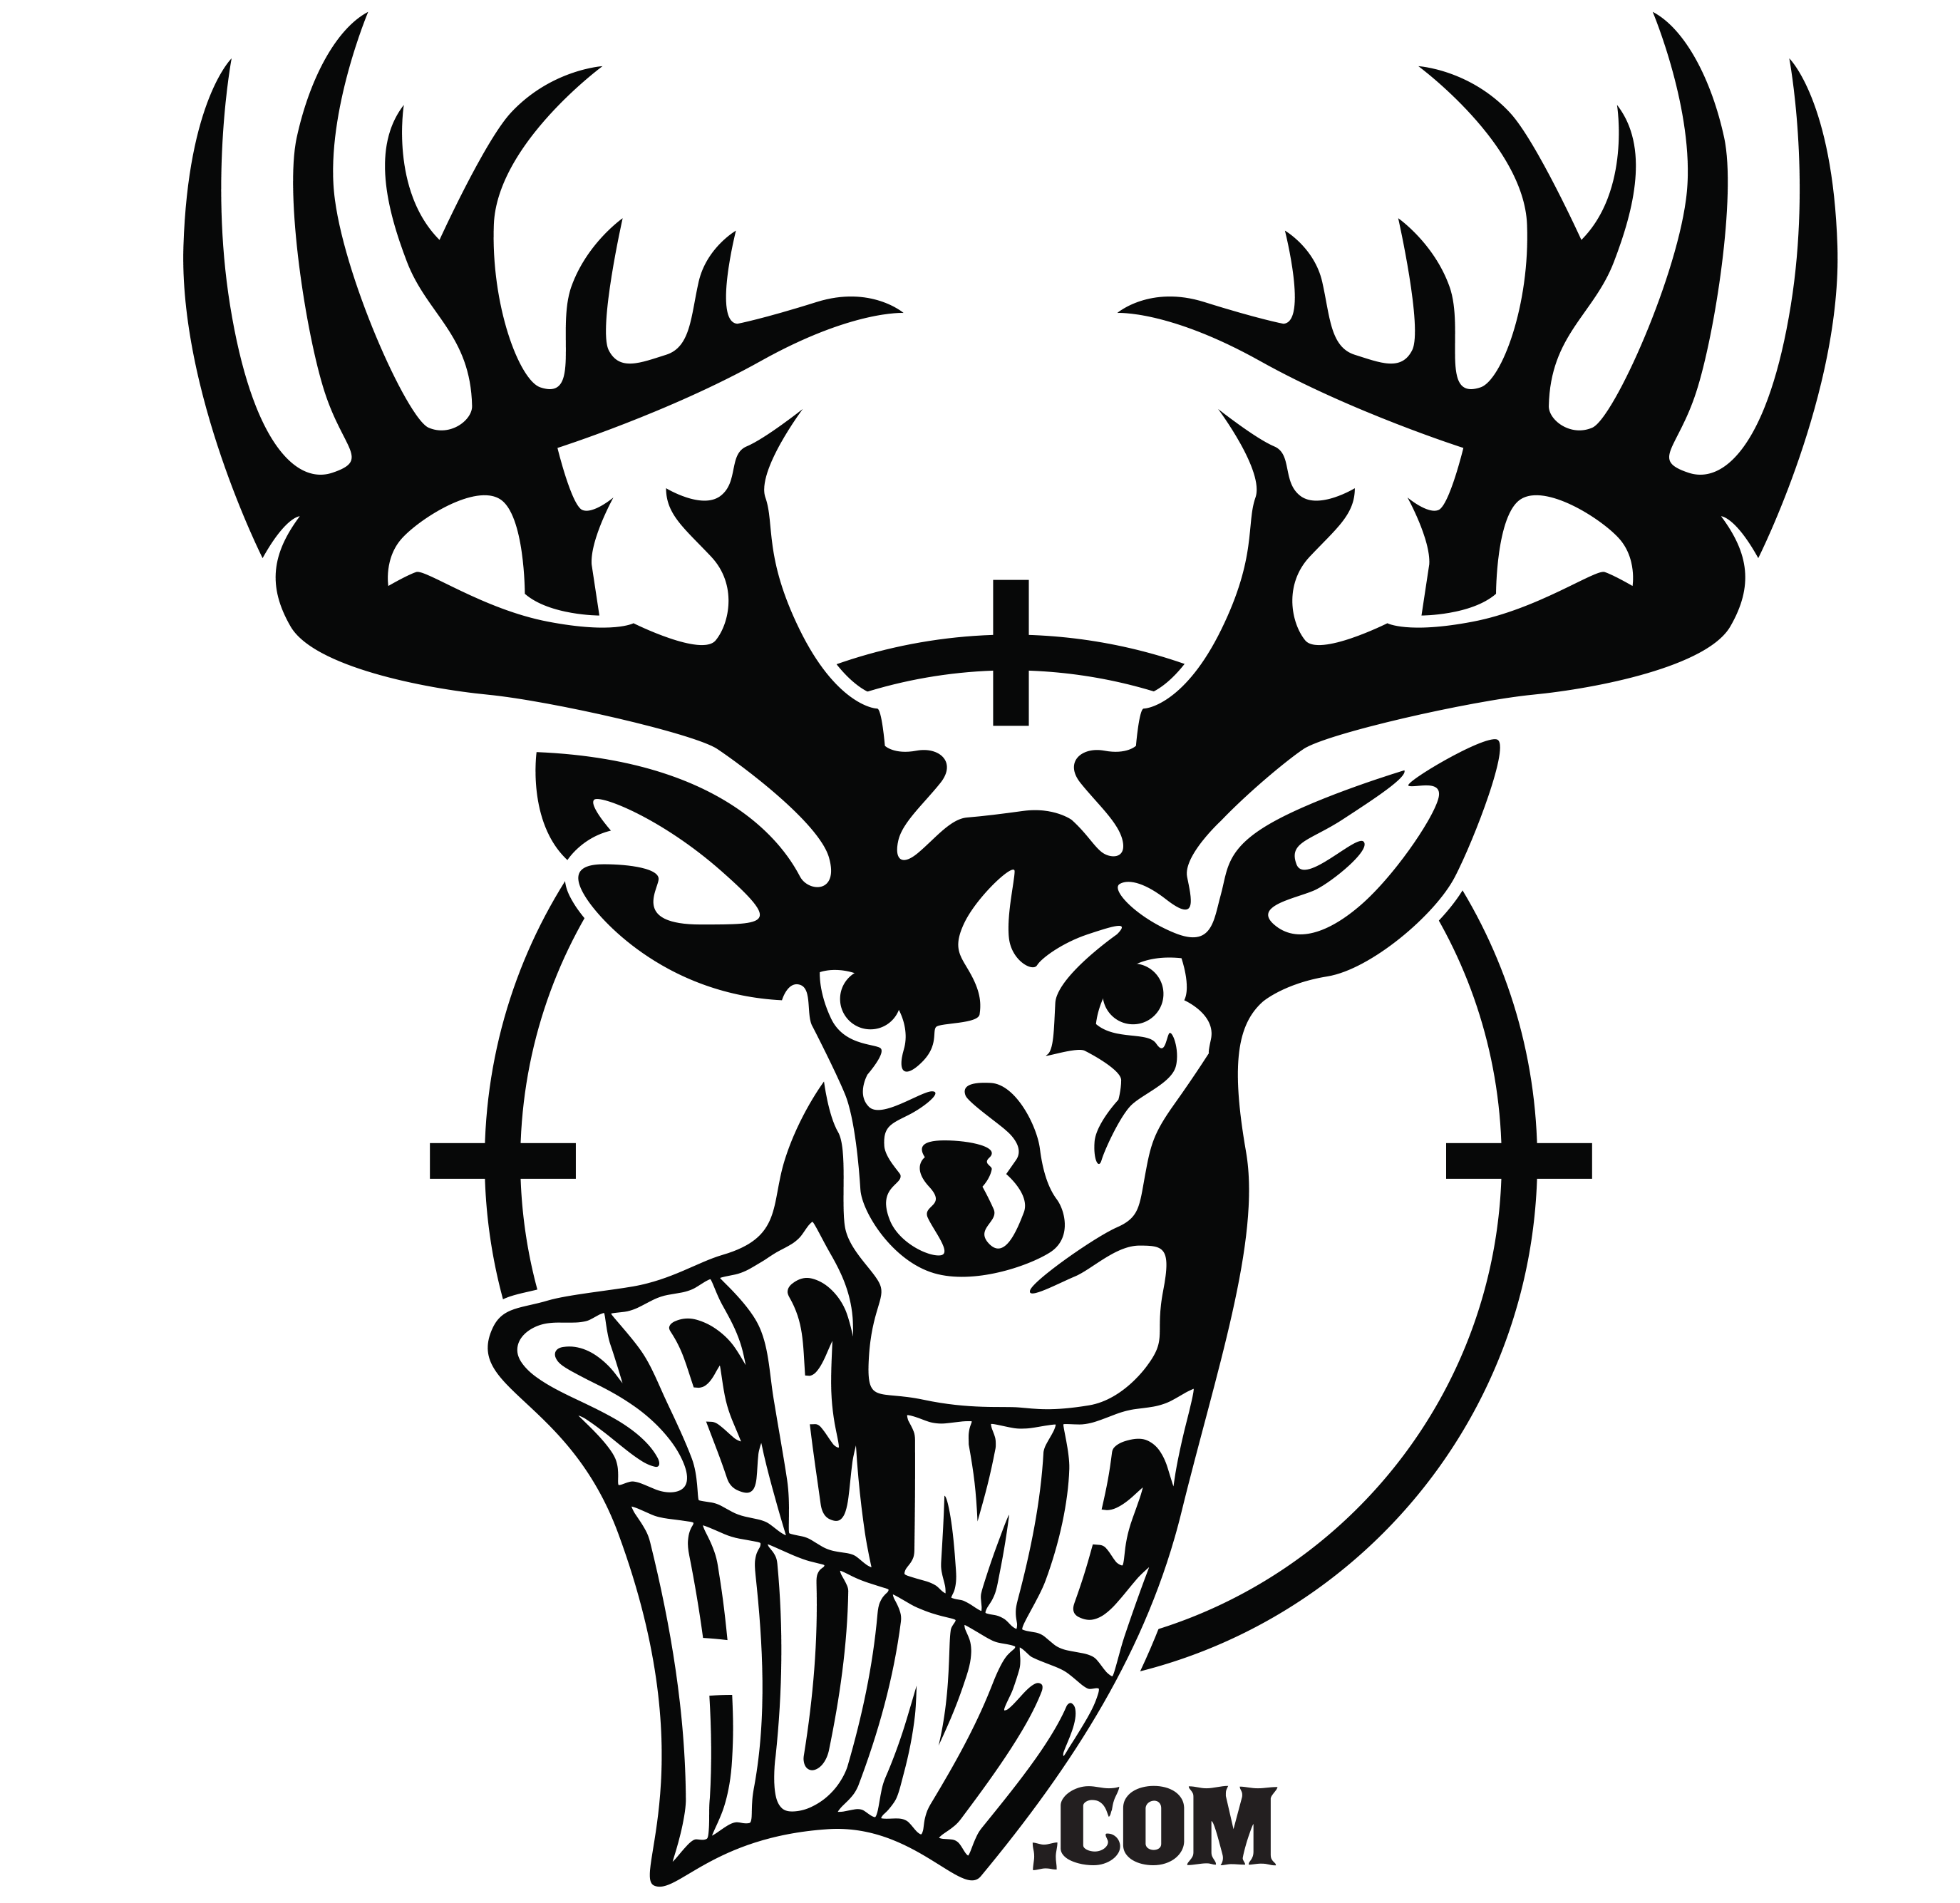 SeeMeHunt - The Interactive Social Network for Hunters